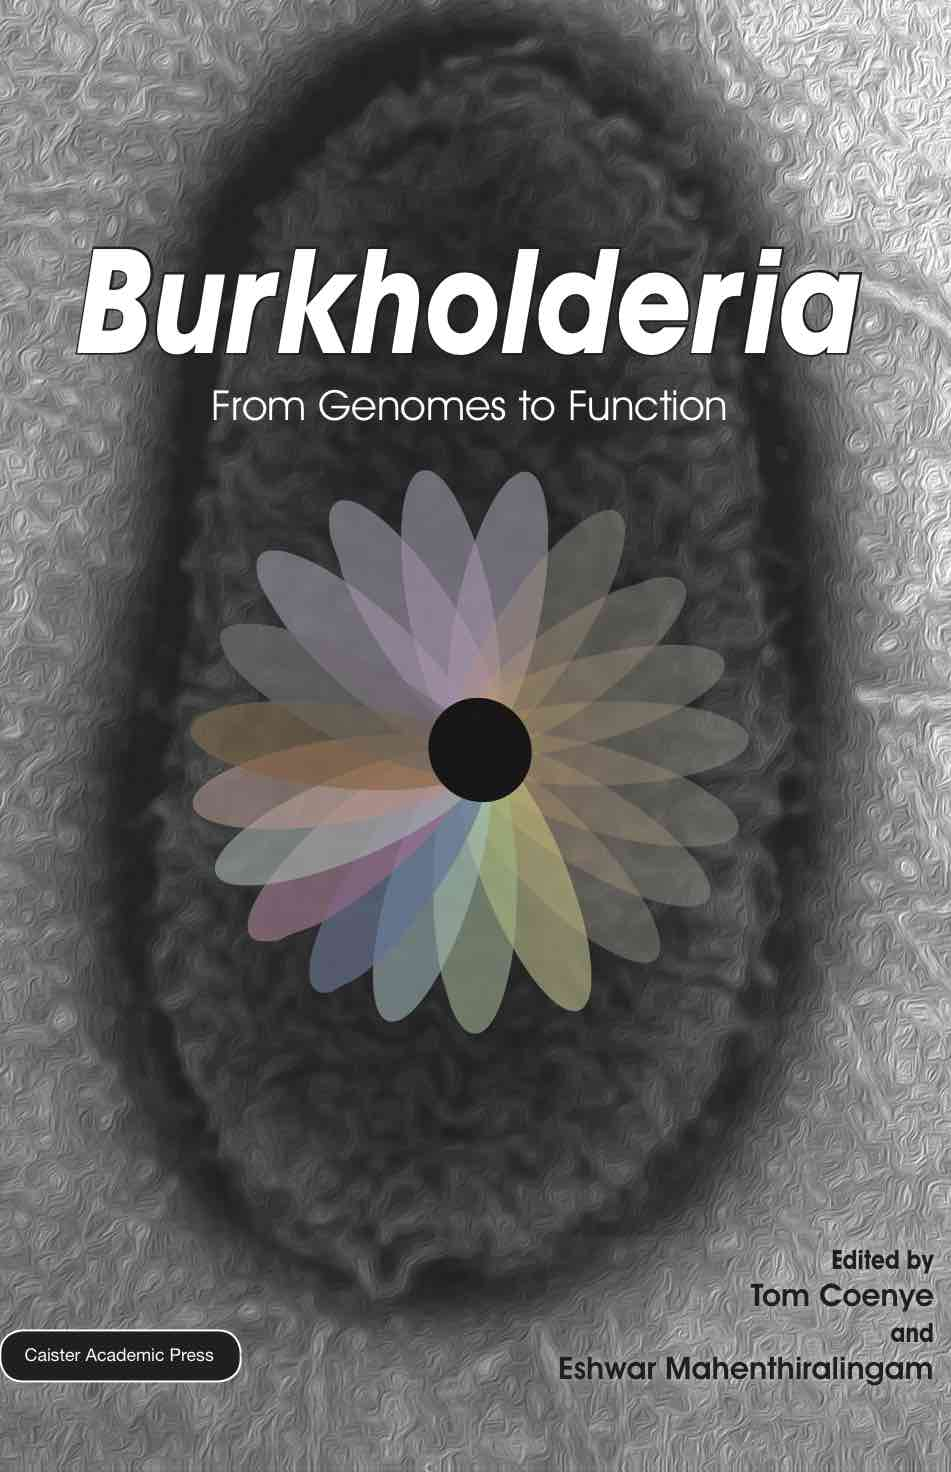 Burkholderia: From Genomes to Function